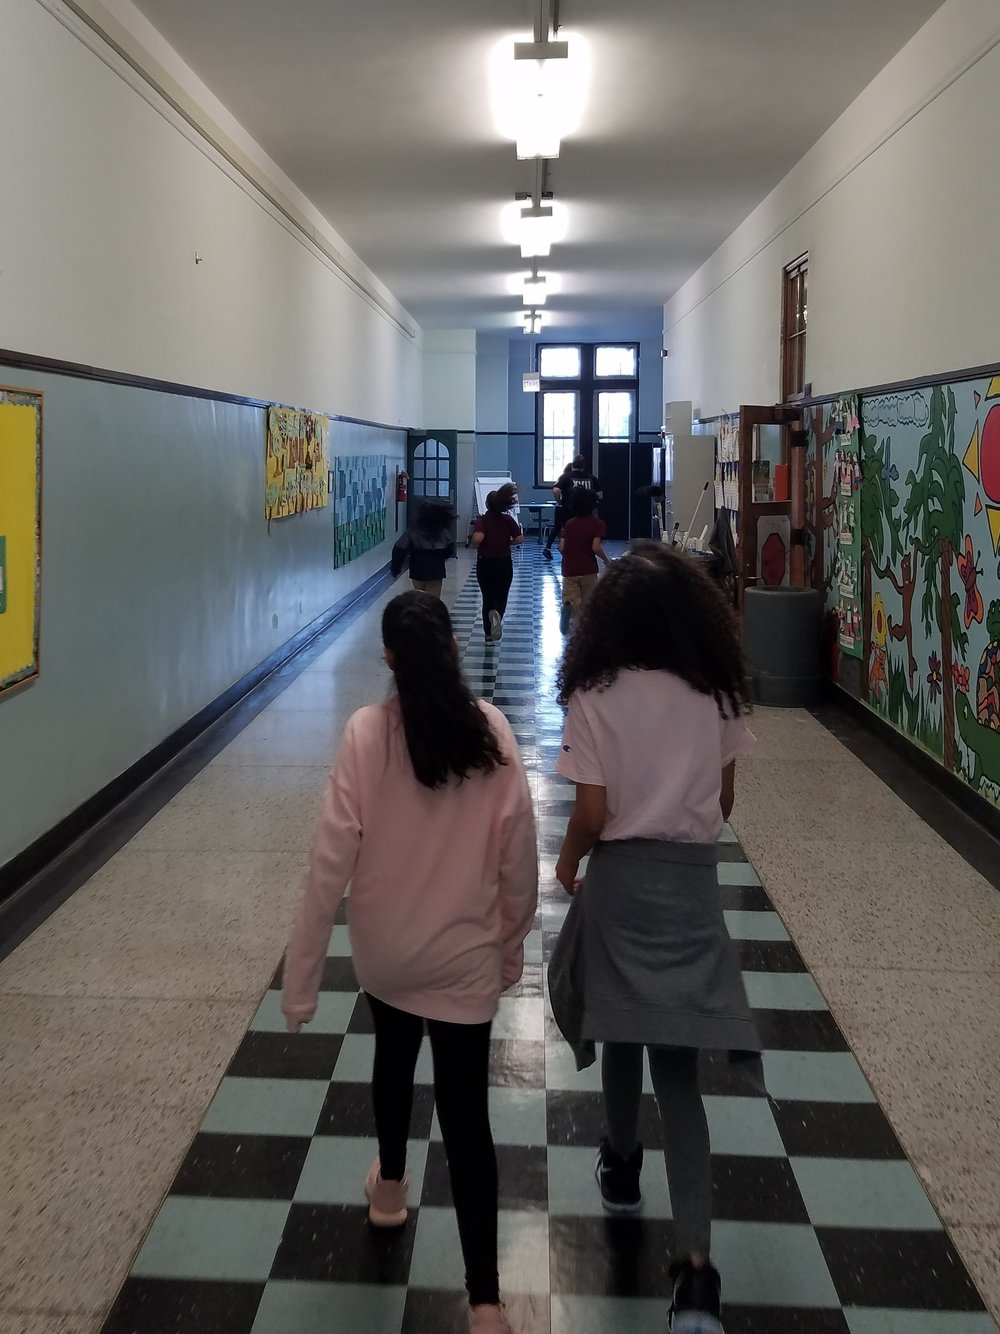 Students at Murphy running their warmup laps around the school during practice!